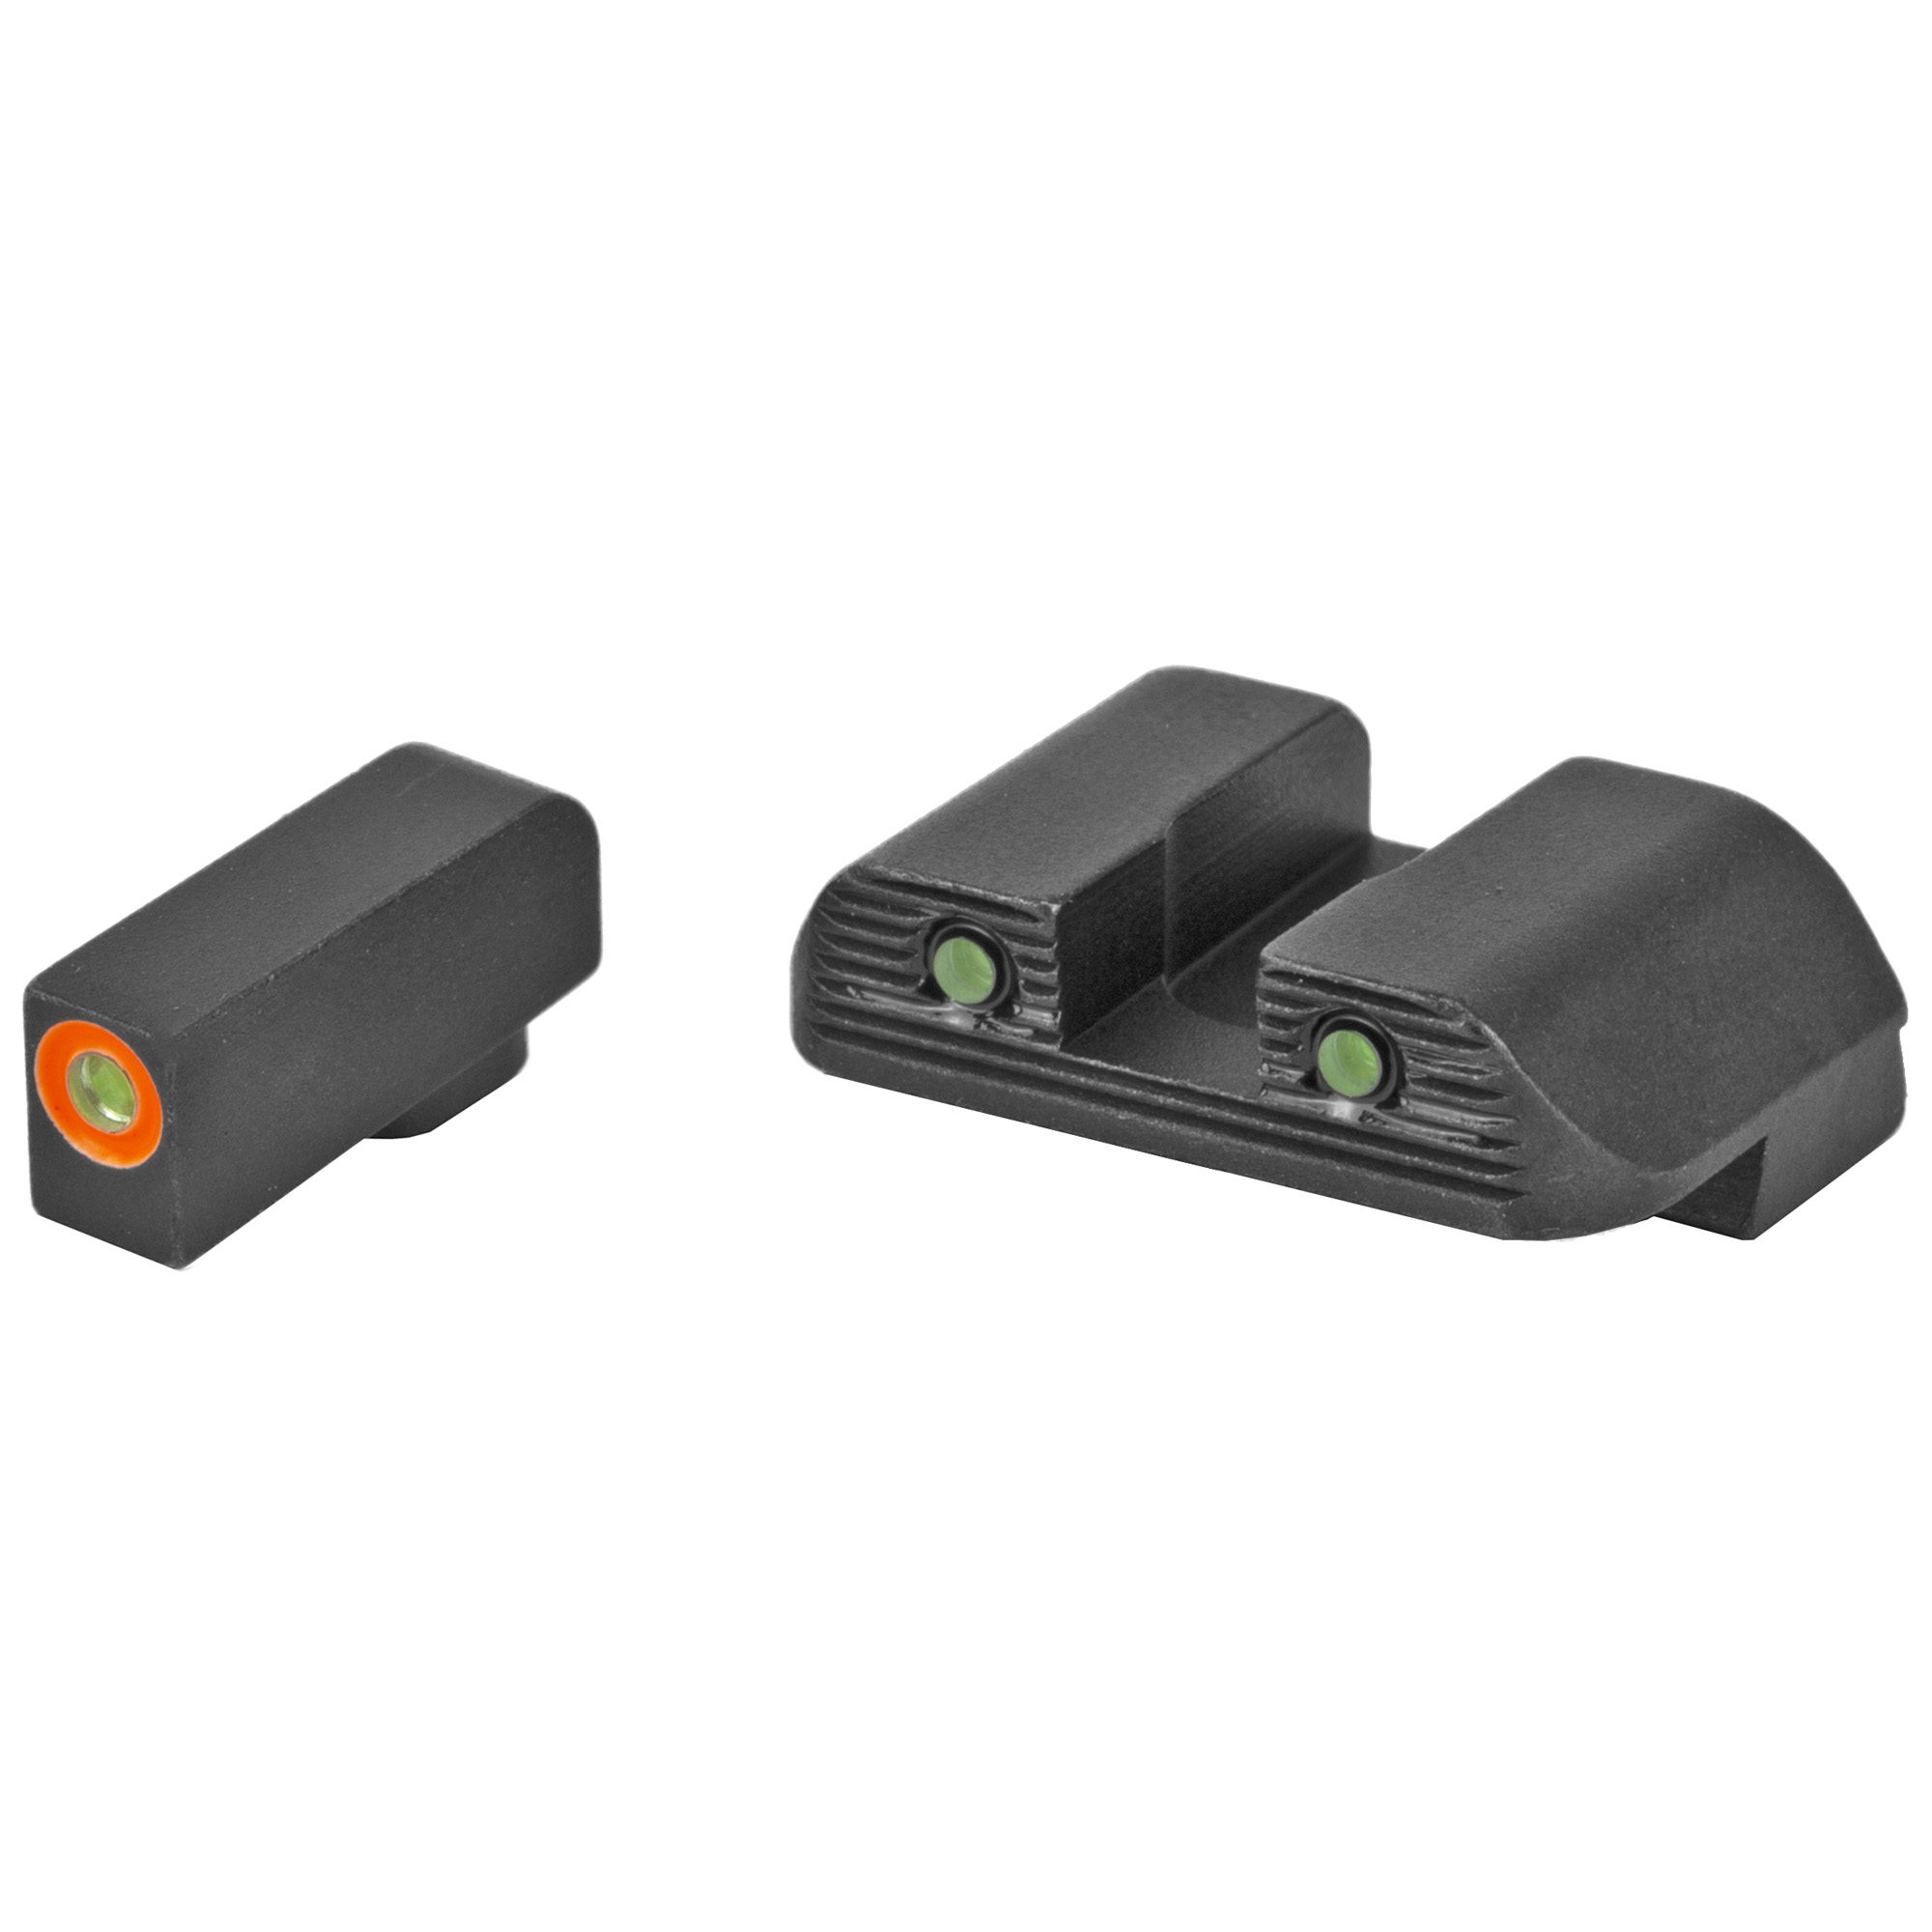 Glock Glock Oem Night Sight Set Amglo .200